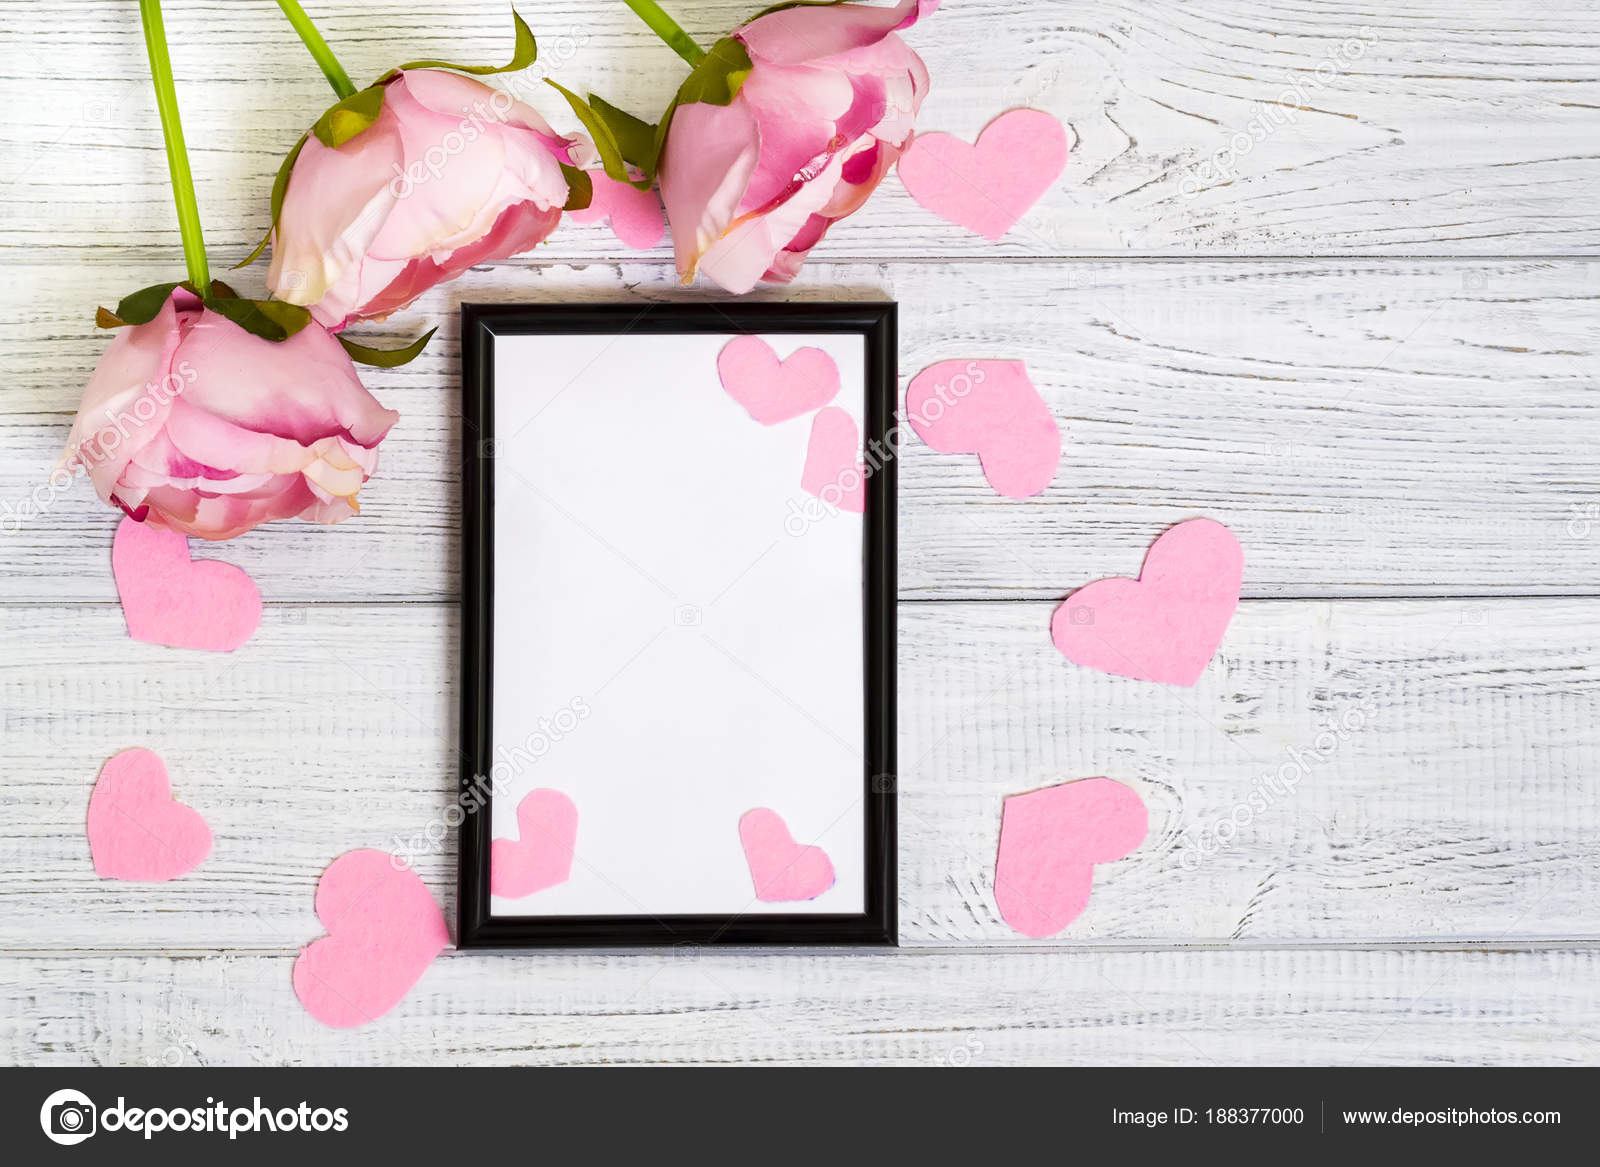 Empty Dark Frame Decorated With Pink Hearts And Pink Flowers Stock